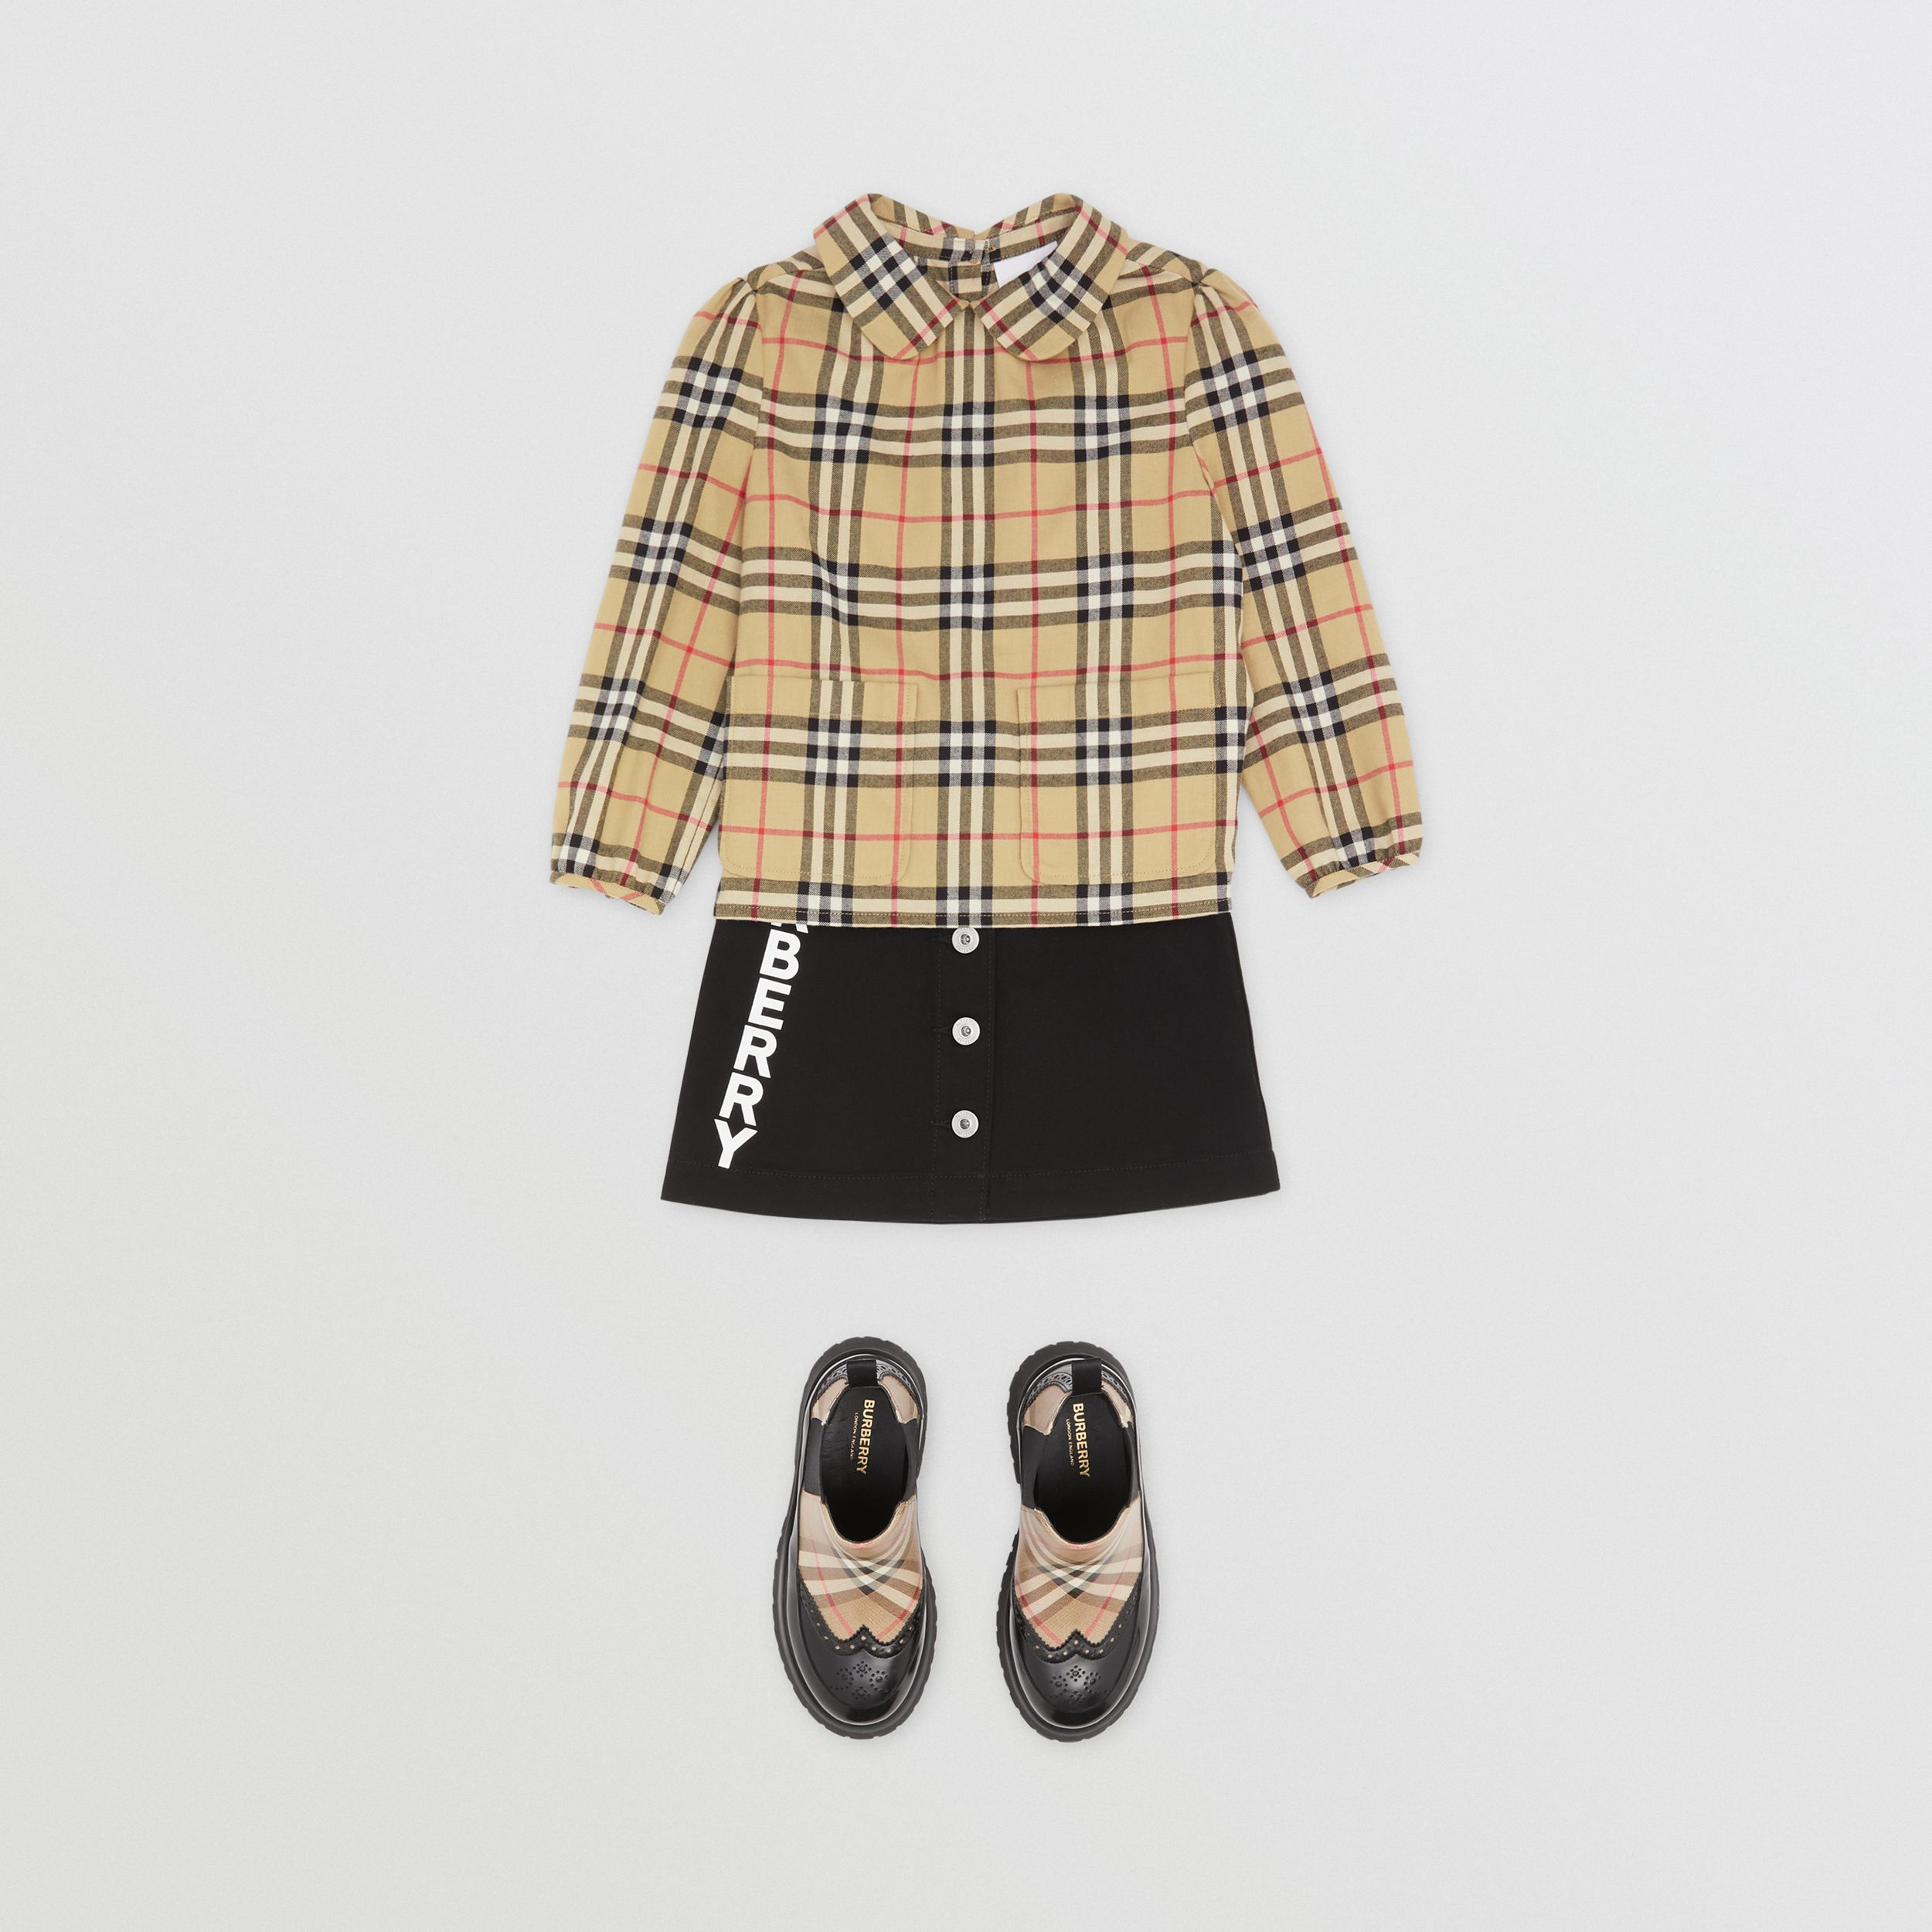 Peter Pan Collar Vintage Check Cotton Blouse | Burberry - 3